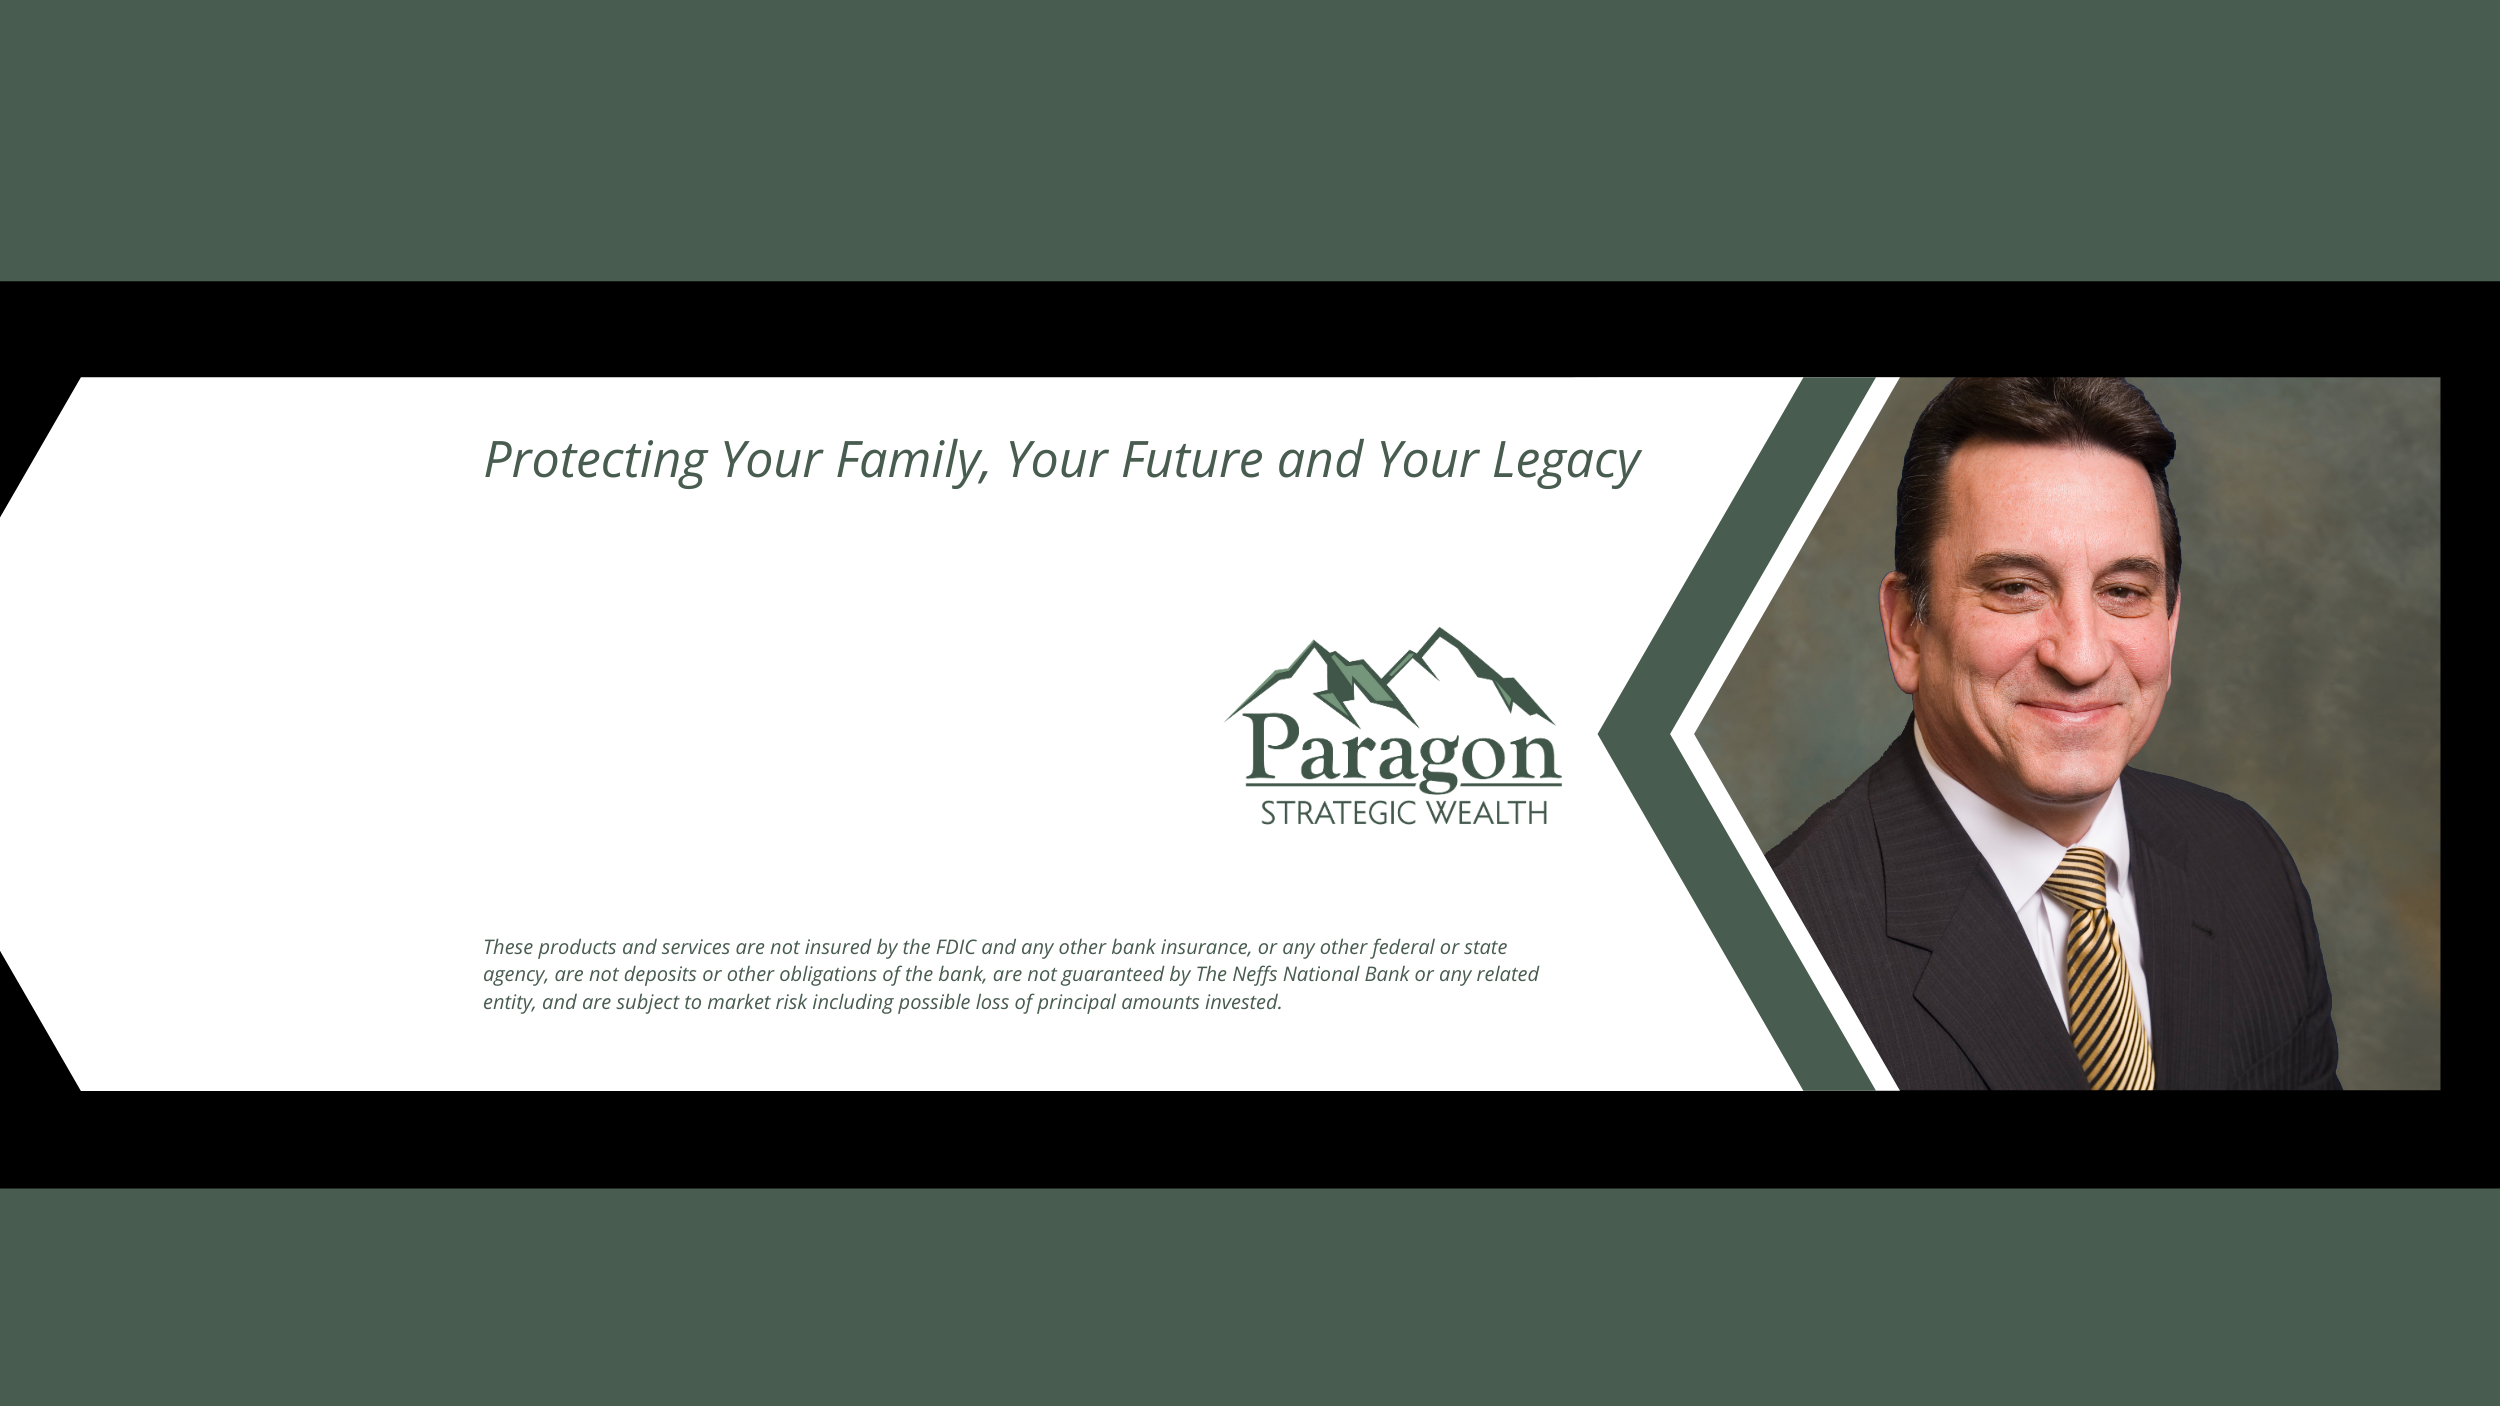 Paragon Strategic Wealth